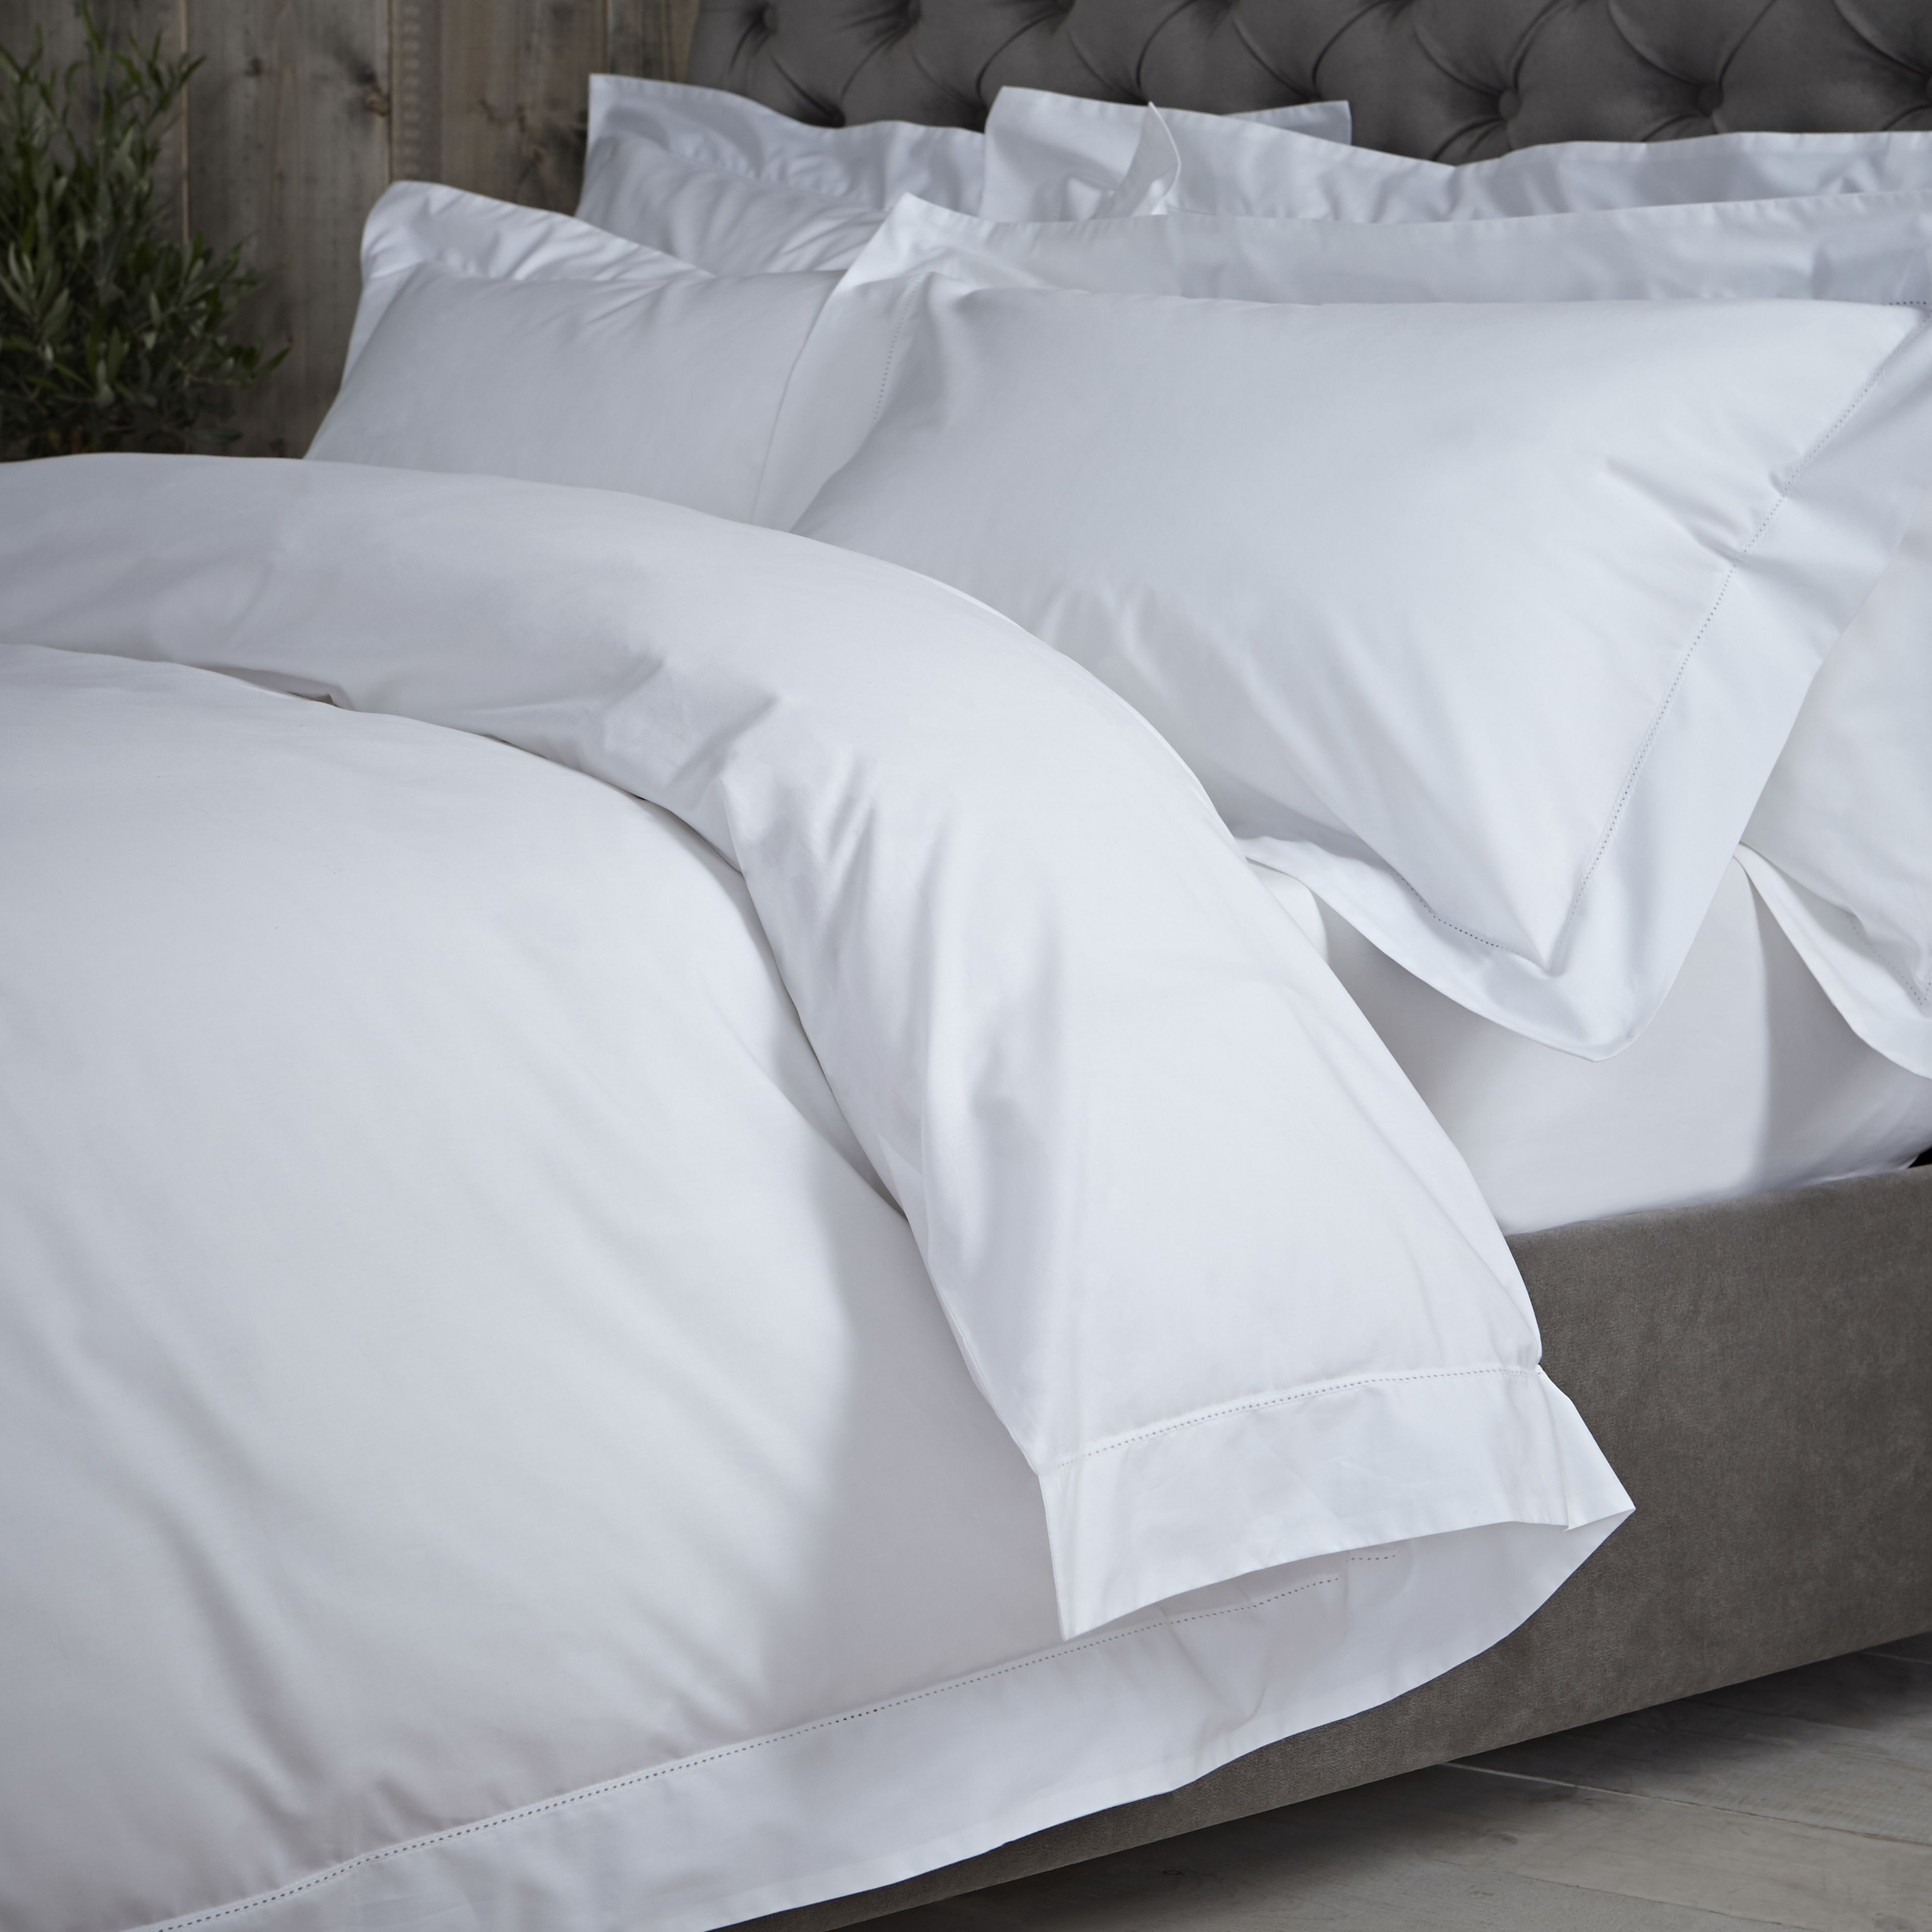 Winter Whites For A Crisp Style In Your Bedroom This Christmas